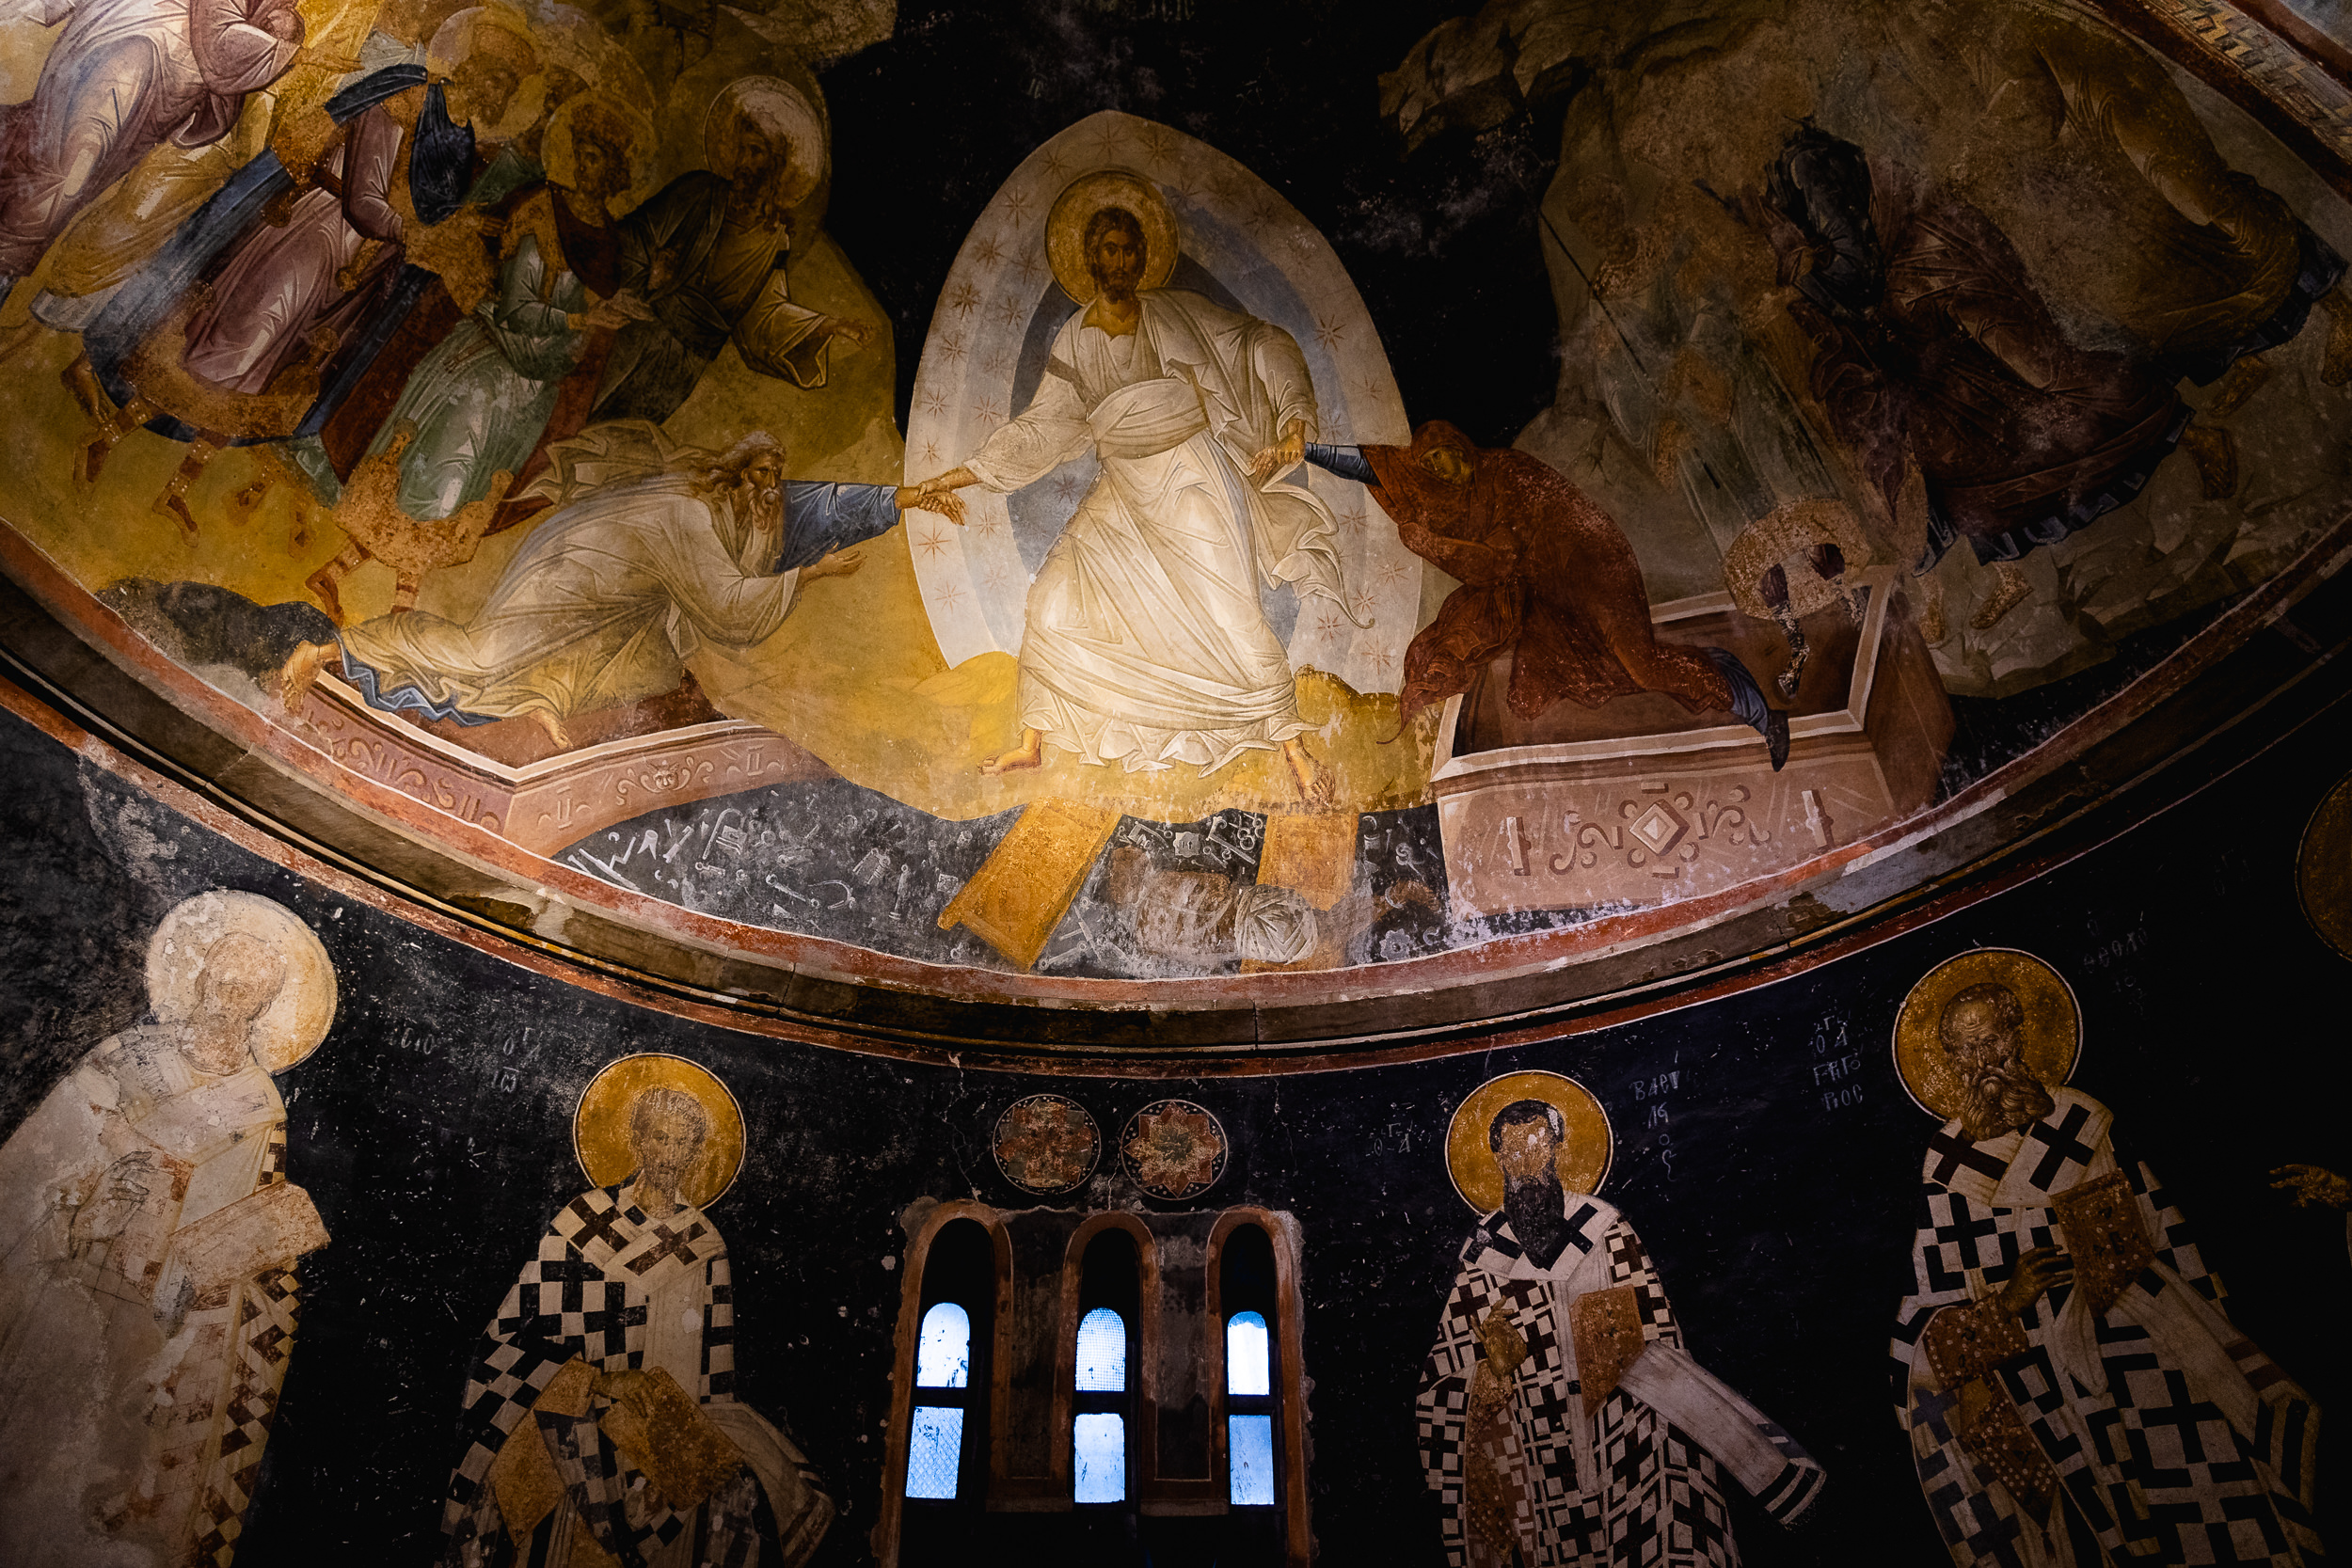 Inside the Chora Church.